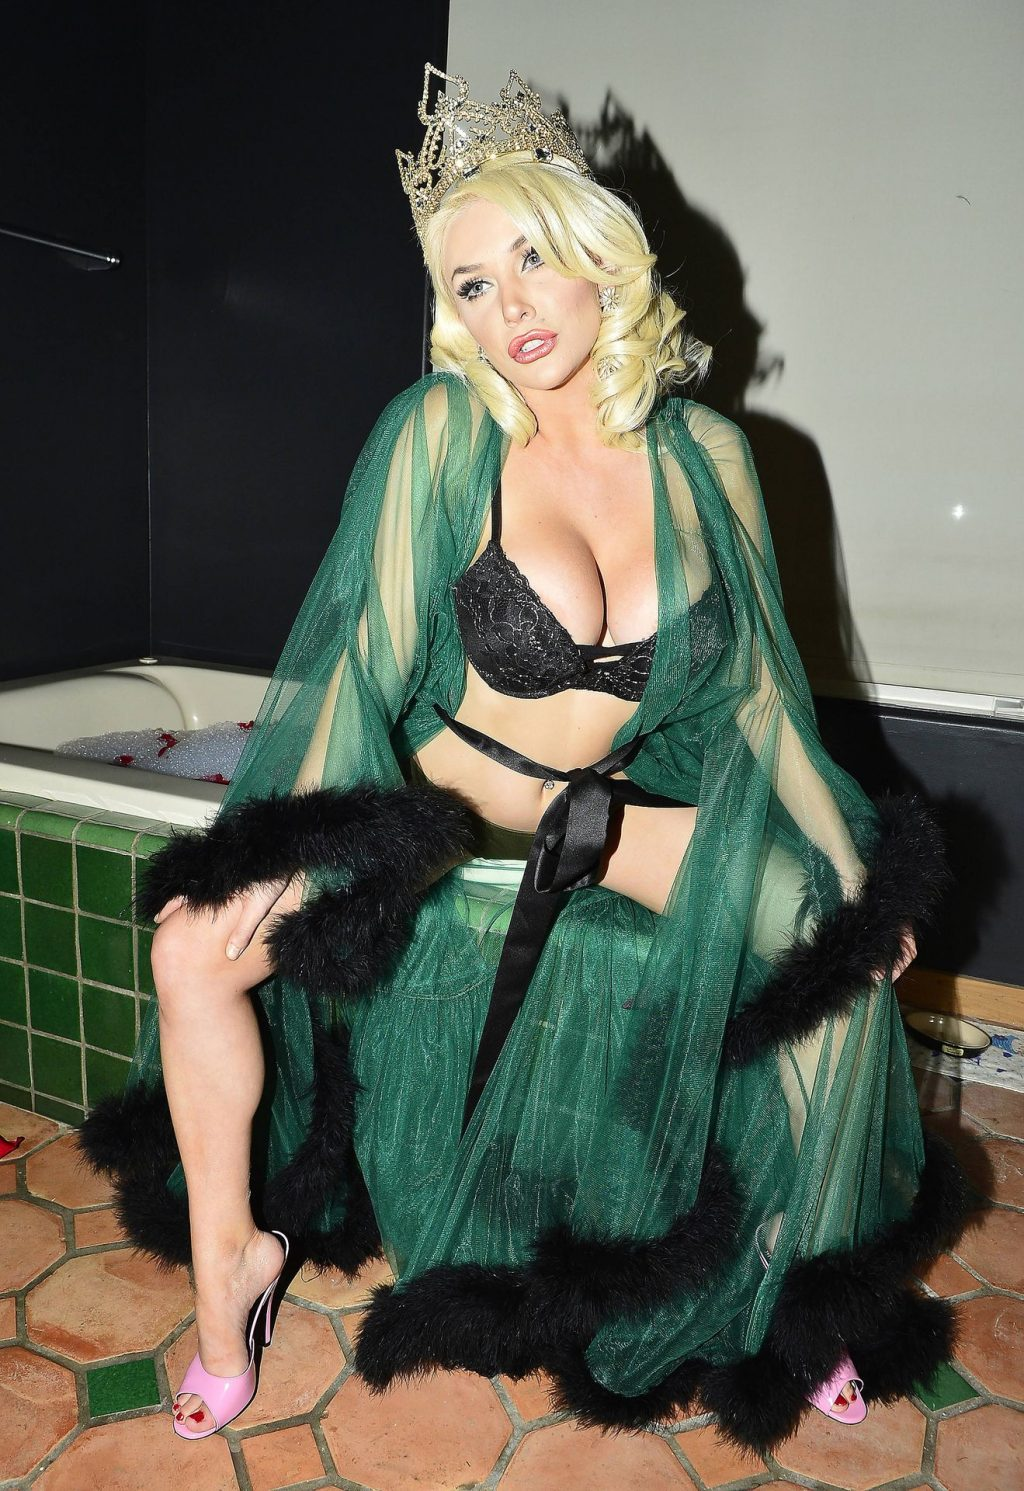 Courtney Stodden Nude Sexy Thefappeningblog Com 13 1024x1491